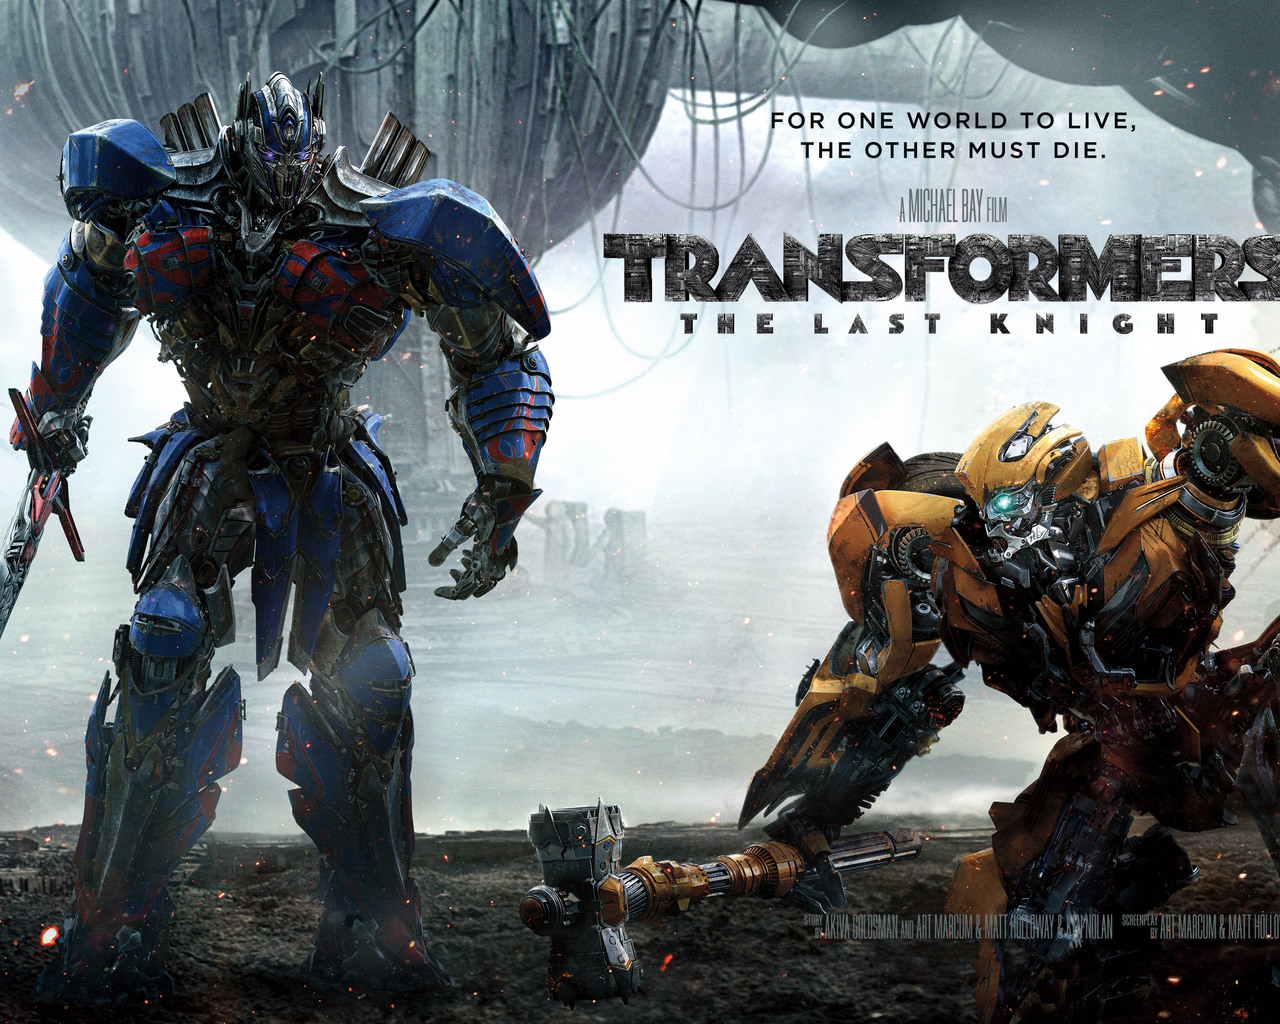 1280x1024 2017 Transformers The Last Knight Movie